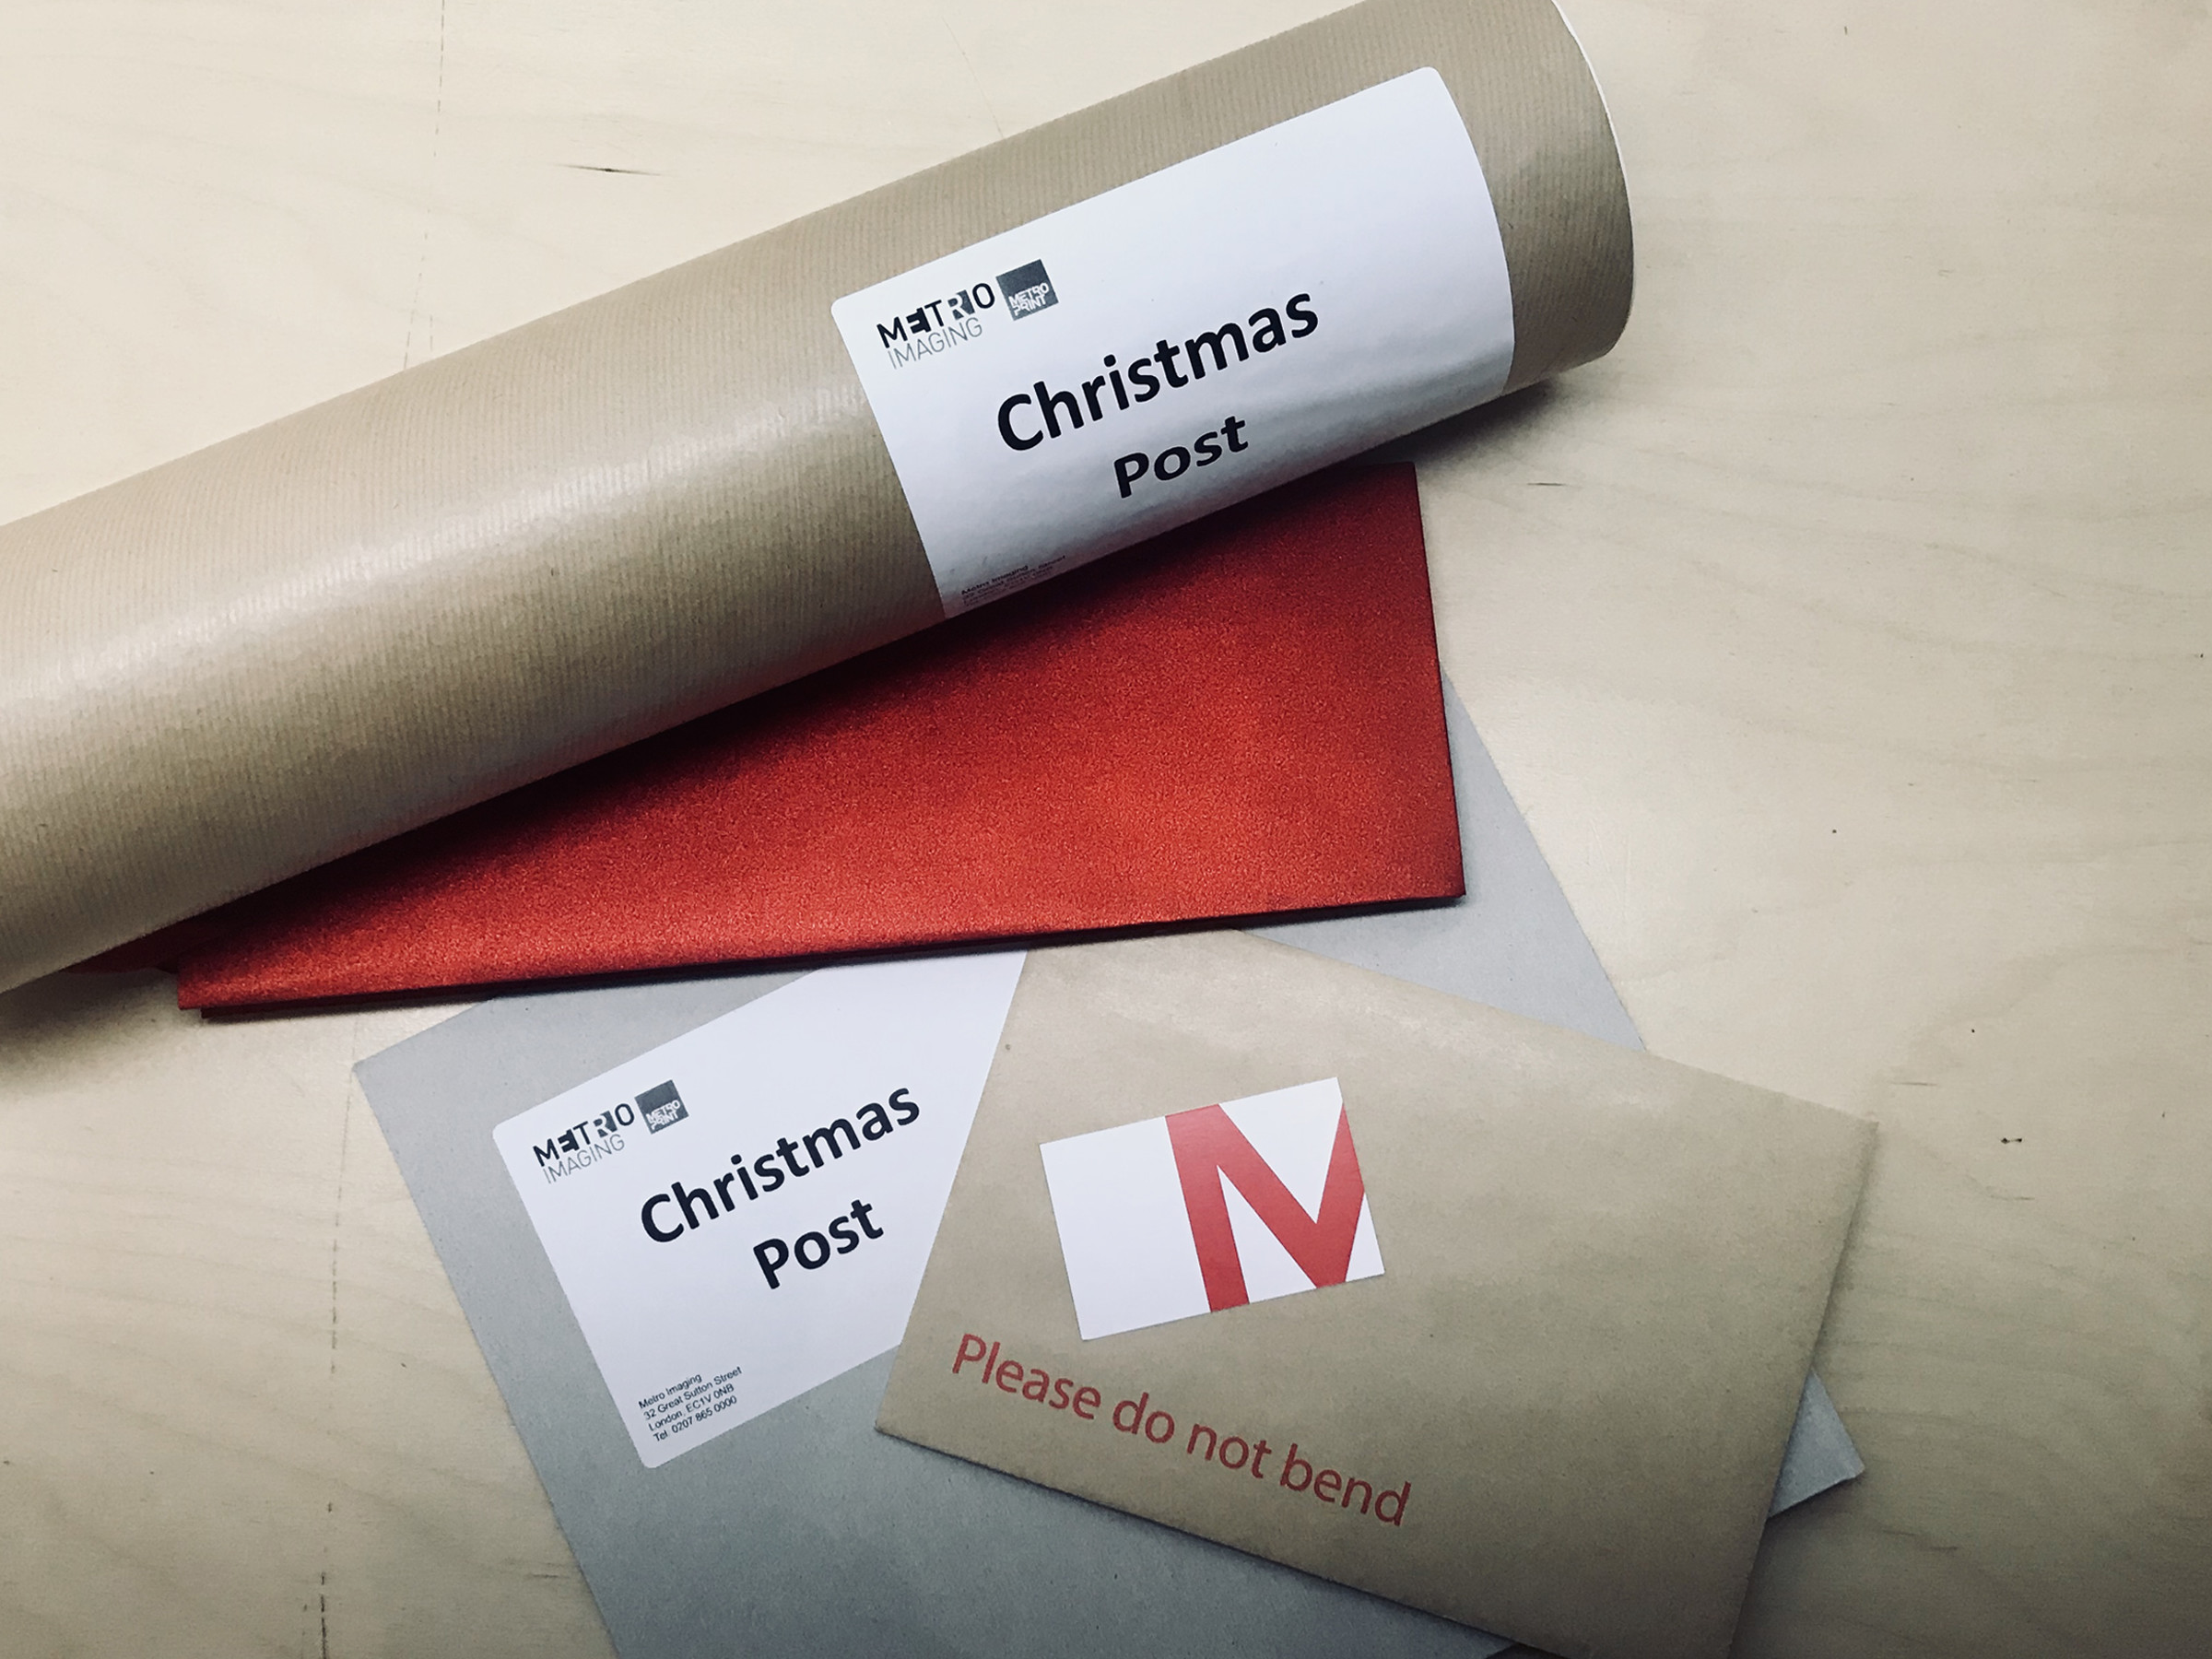 We've listed all our print, processing and framing deadlines below for you to use as a handy guide this Christmas. And for those of you last minute Christmas shoppers – don't worry, we have plenty of Metro Imaging Gift Vouchers and film stocked in our front of house right up until the 22nd December!    CHRISTMAS DEADLINE DATES […]